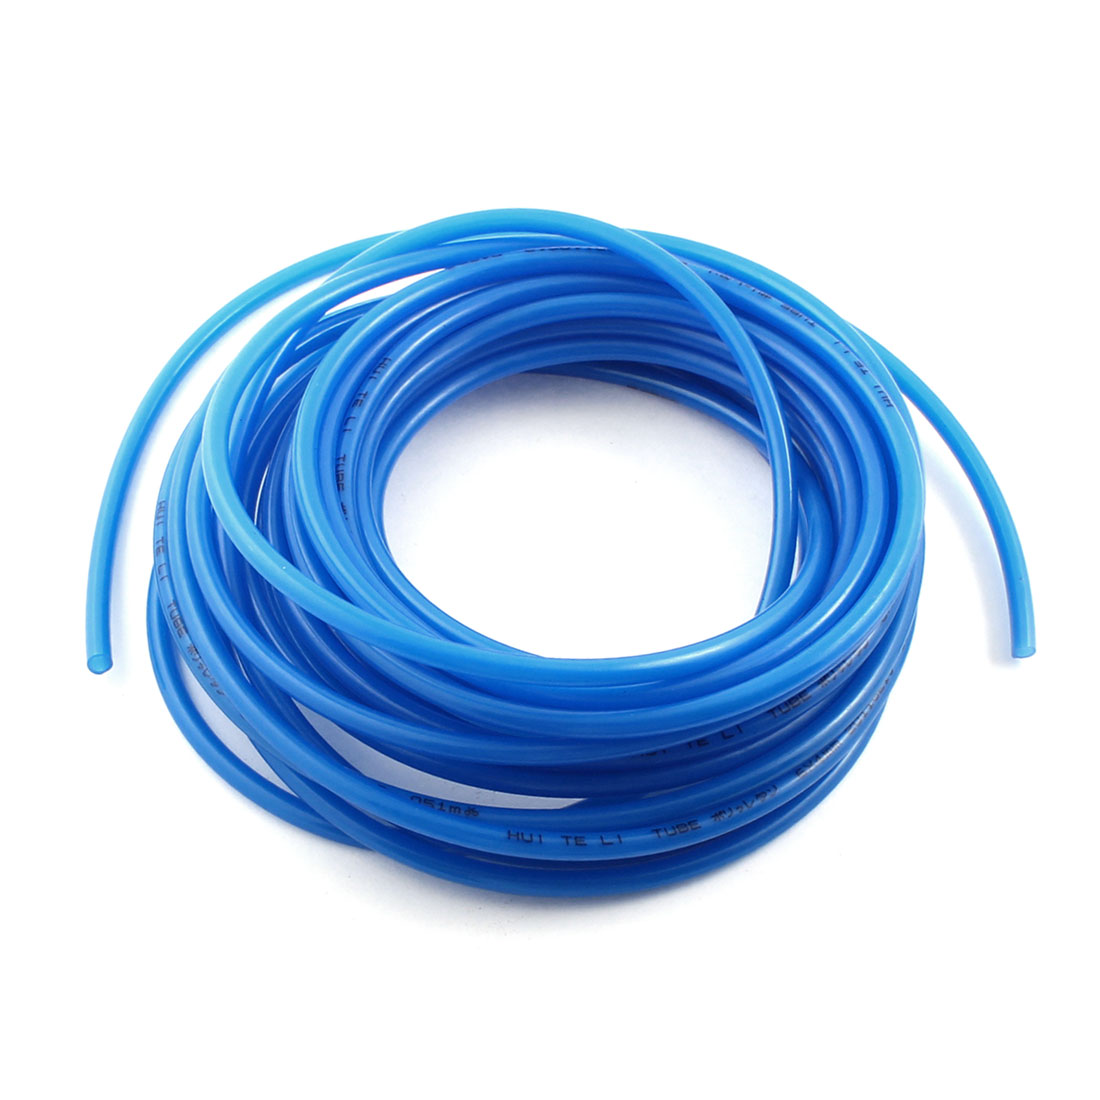 UXCELL 6Mm Od 4Mm Inner Dia Blue Pu Tube Hose Pipe 10M 33Ft For Pneumatics<br><br>Aliexpress